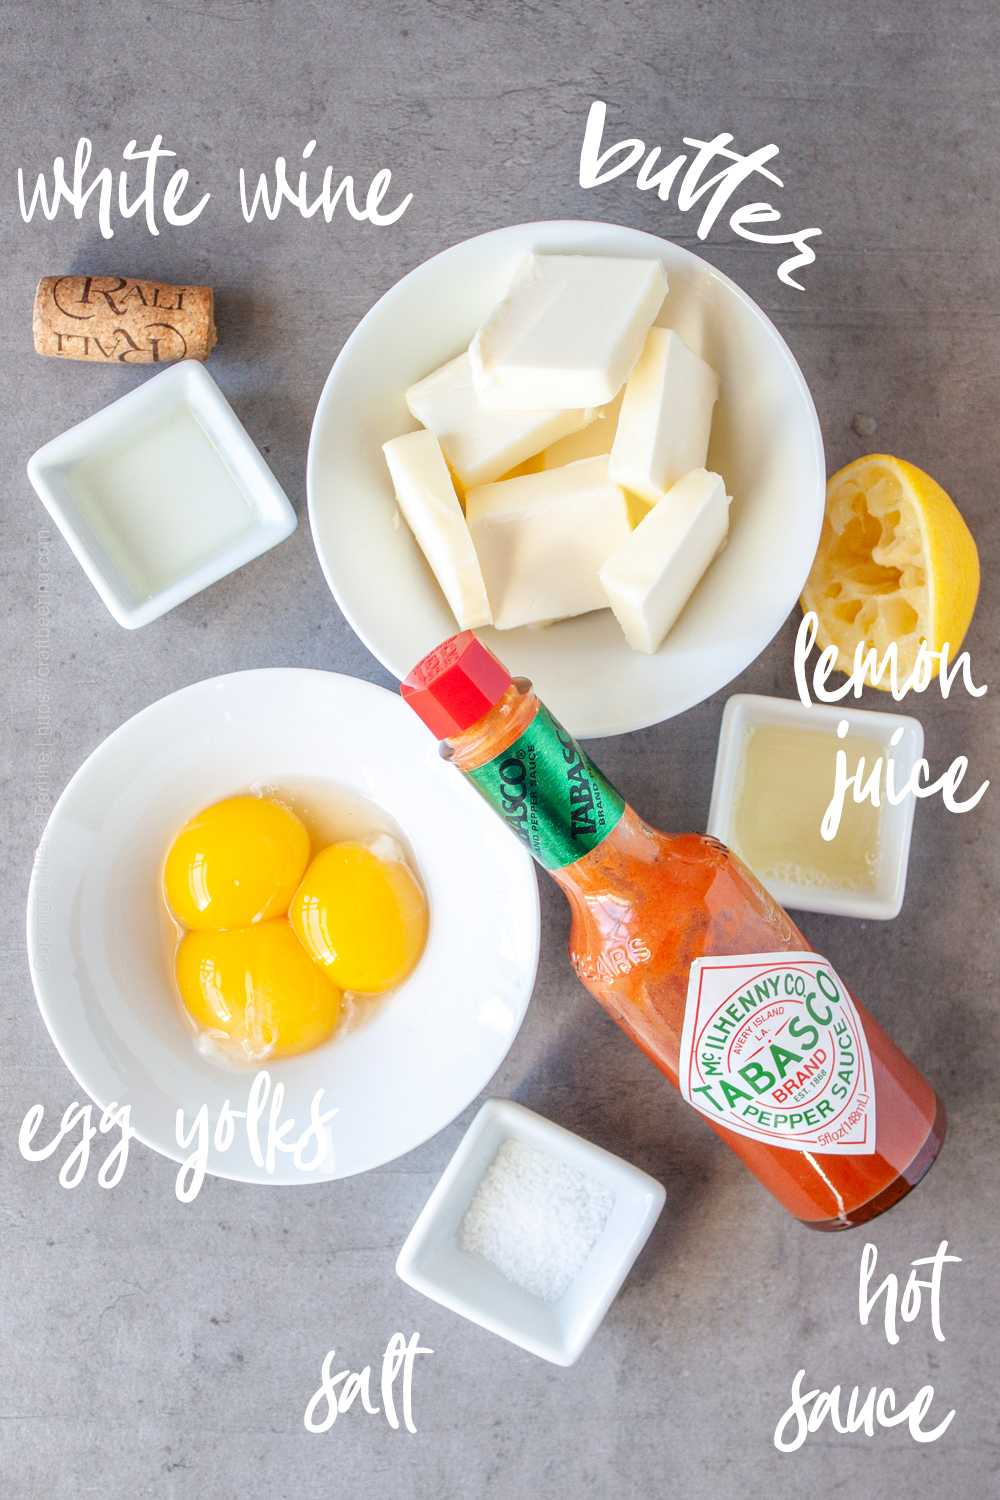 Raw ingredients for Hollandaise sauce